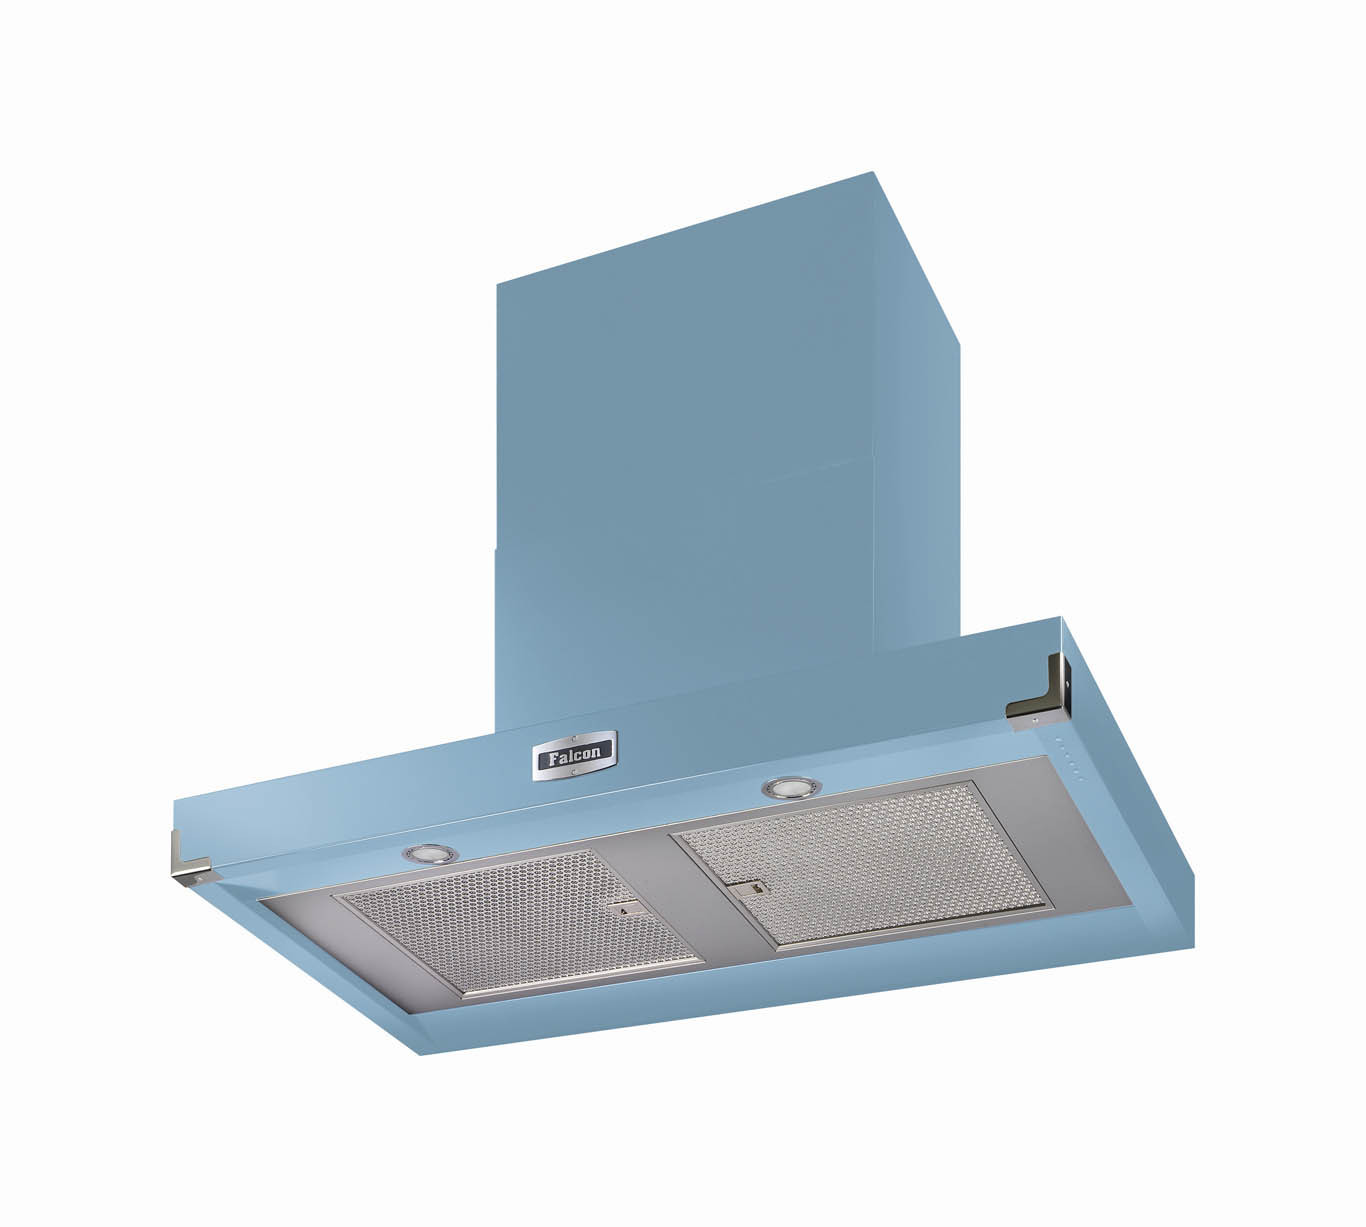 Falcon 900 Contemporary China Blue Cooker Hood Nickel